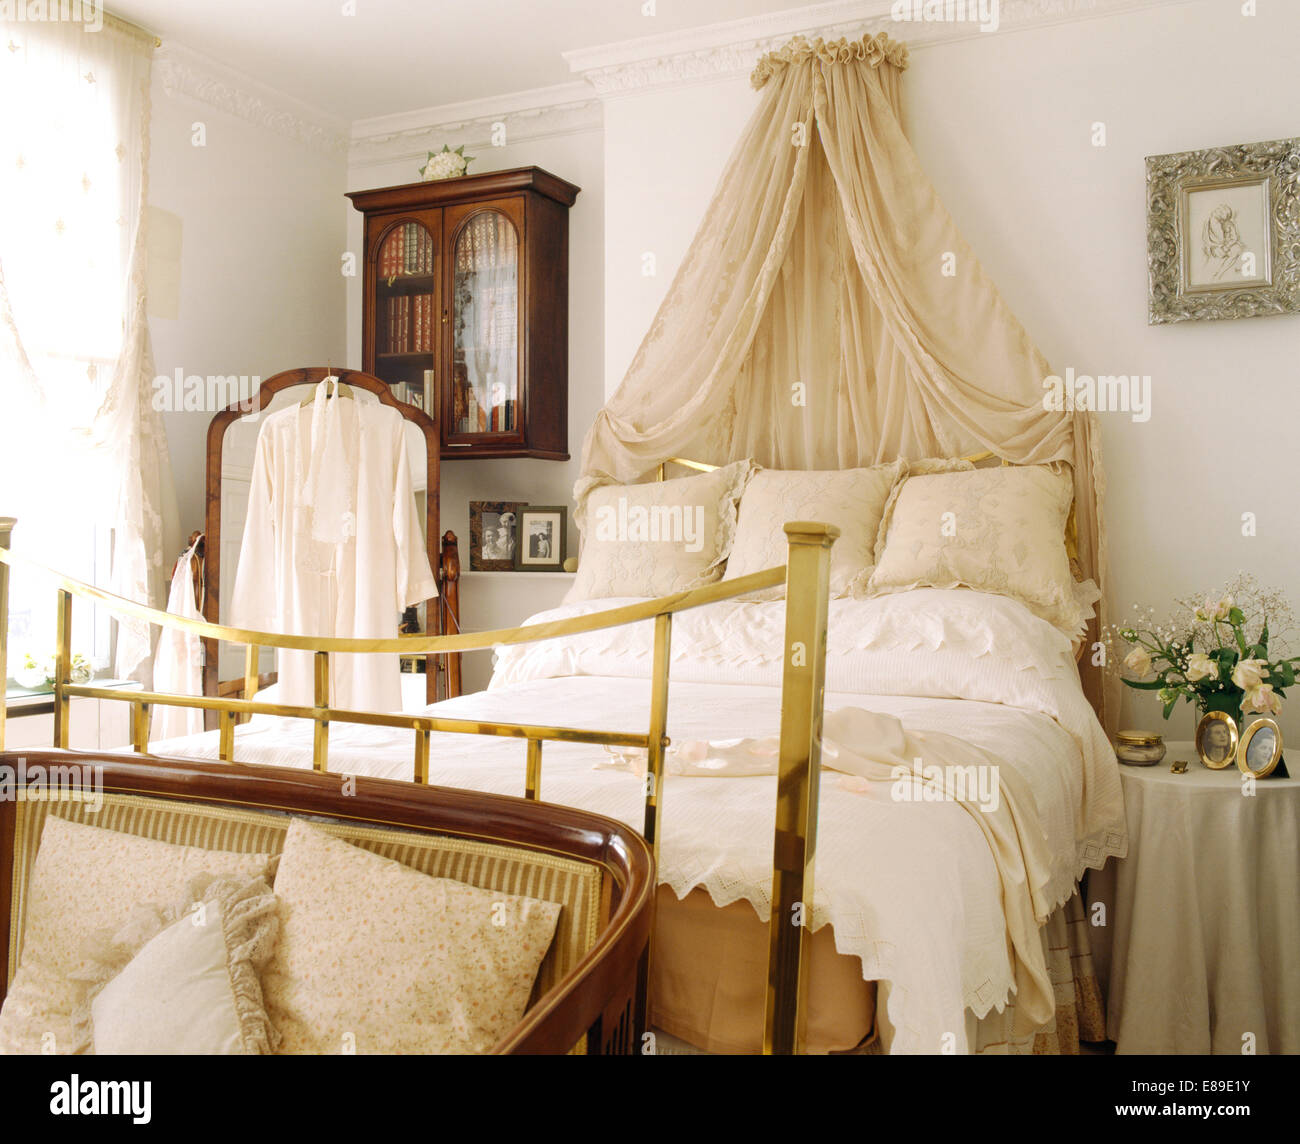 Coronet with cream voile drapes above brass bed with cream cushions and white duvet in white bedroom & Coronet with cream voile drapes above brass bed with cream ...